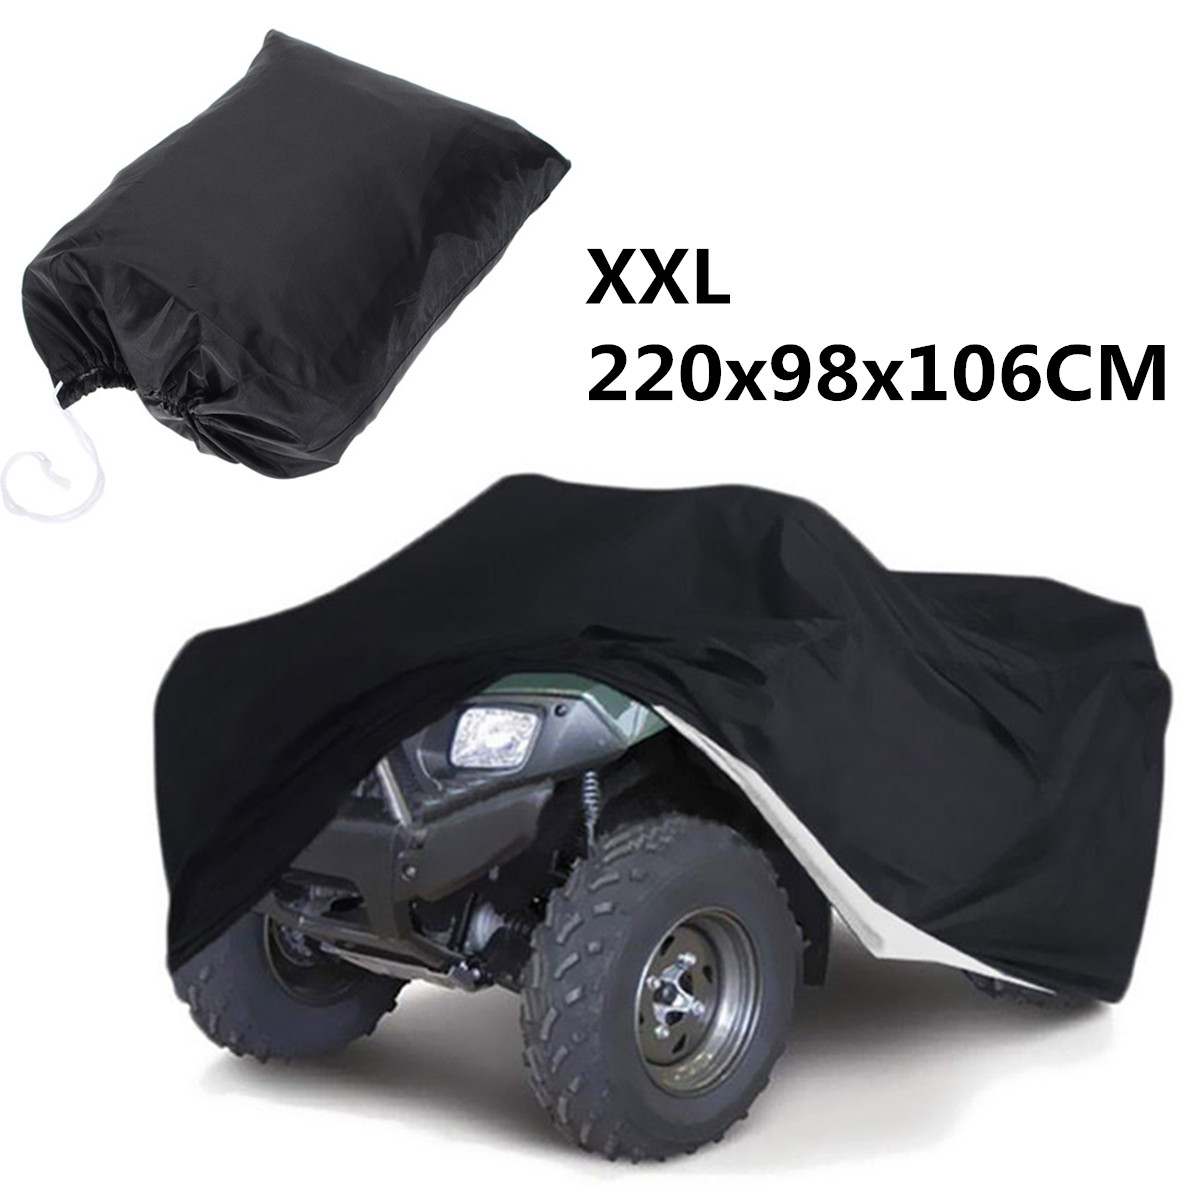 XXL 220x98x106cm Black Universal Motorcycle Quad Bike ATV ATC Cover PU Waterproof Heatproof